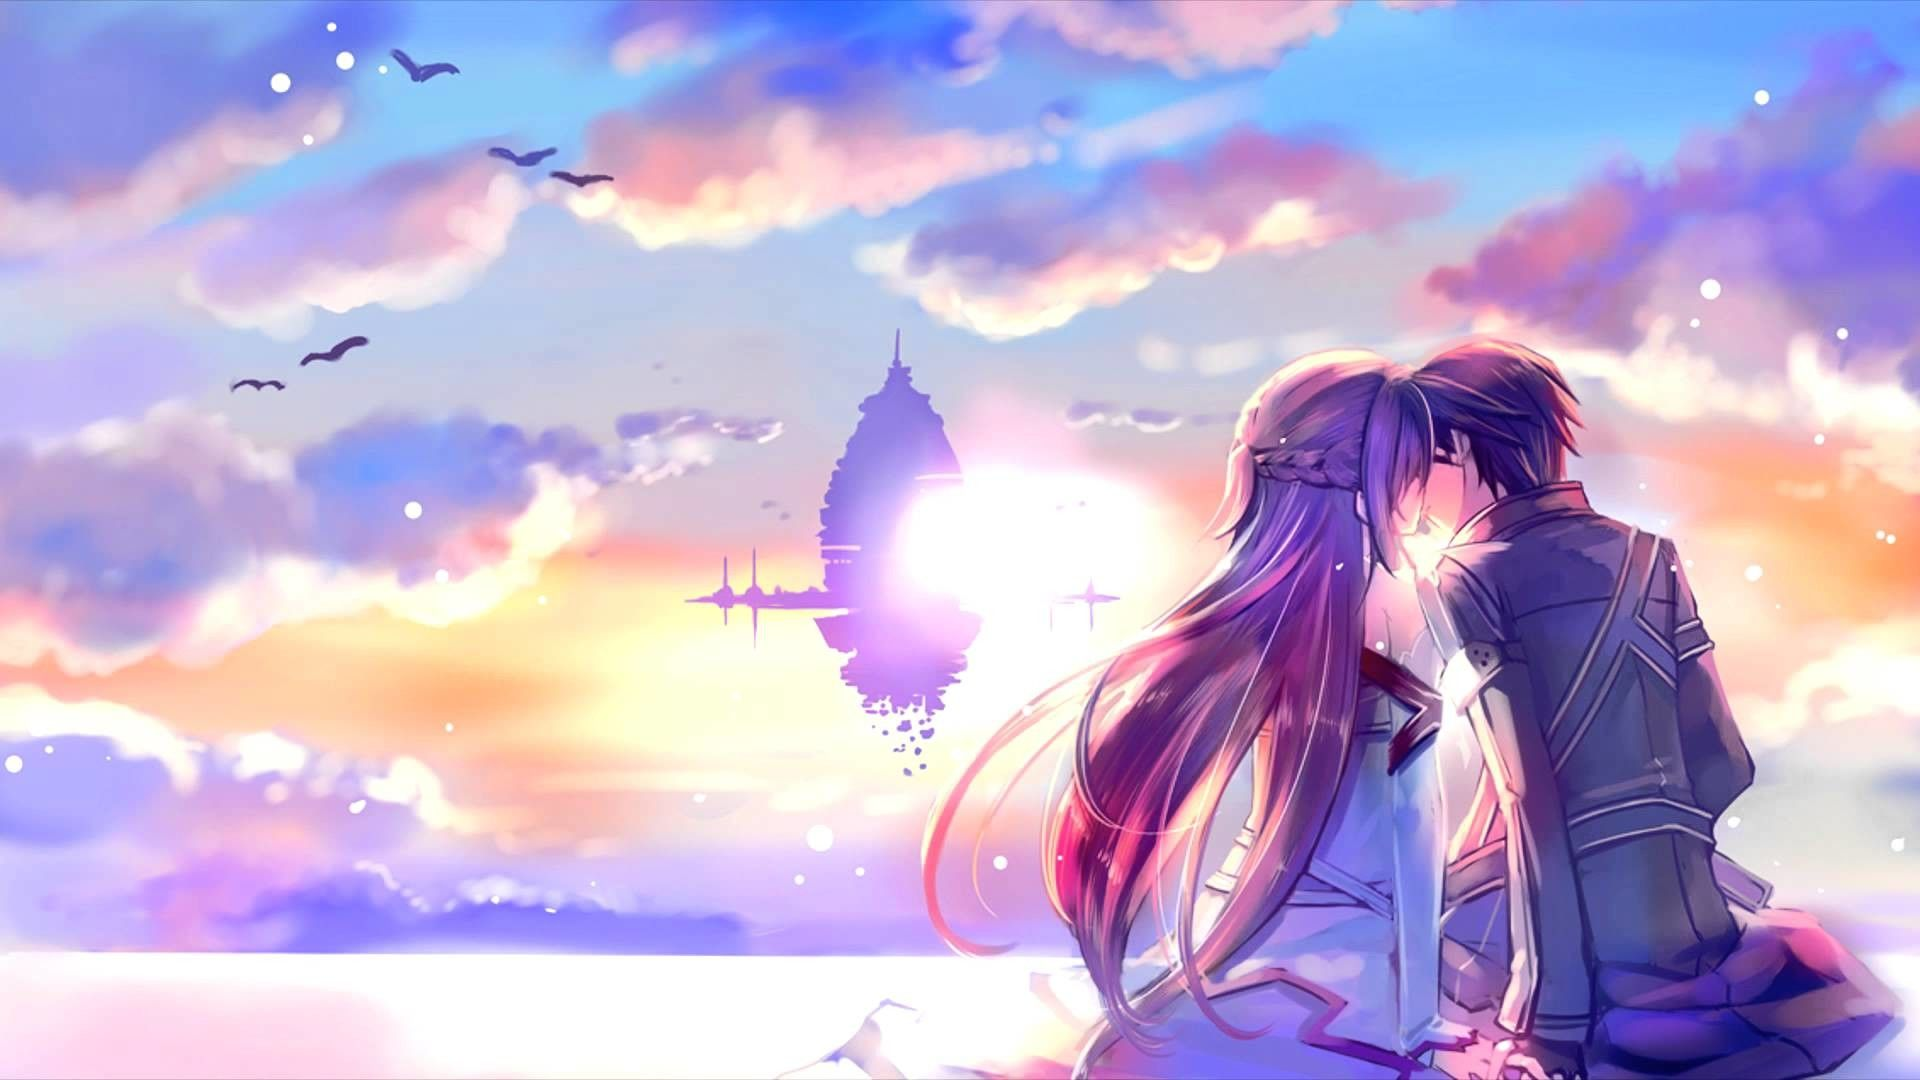 Romantic Anime Wallpapers Top Free Romantic Anime